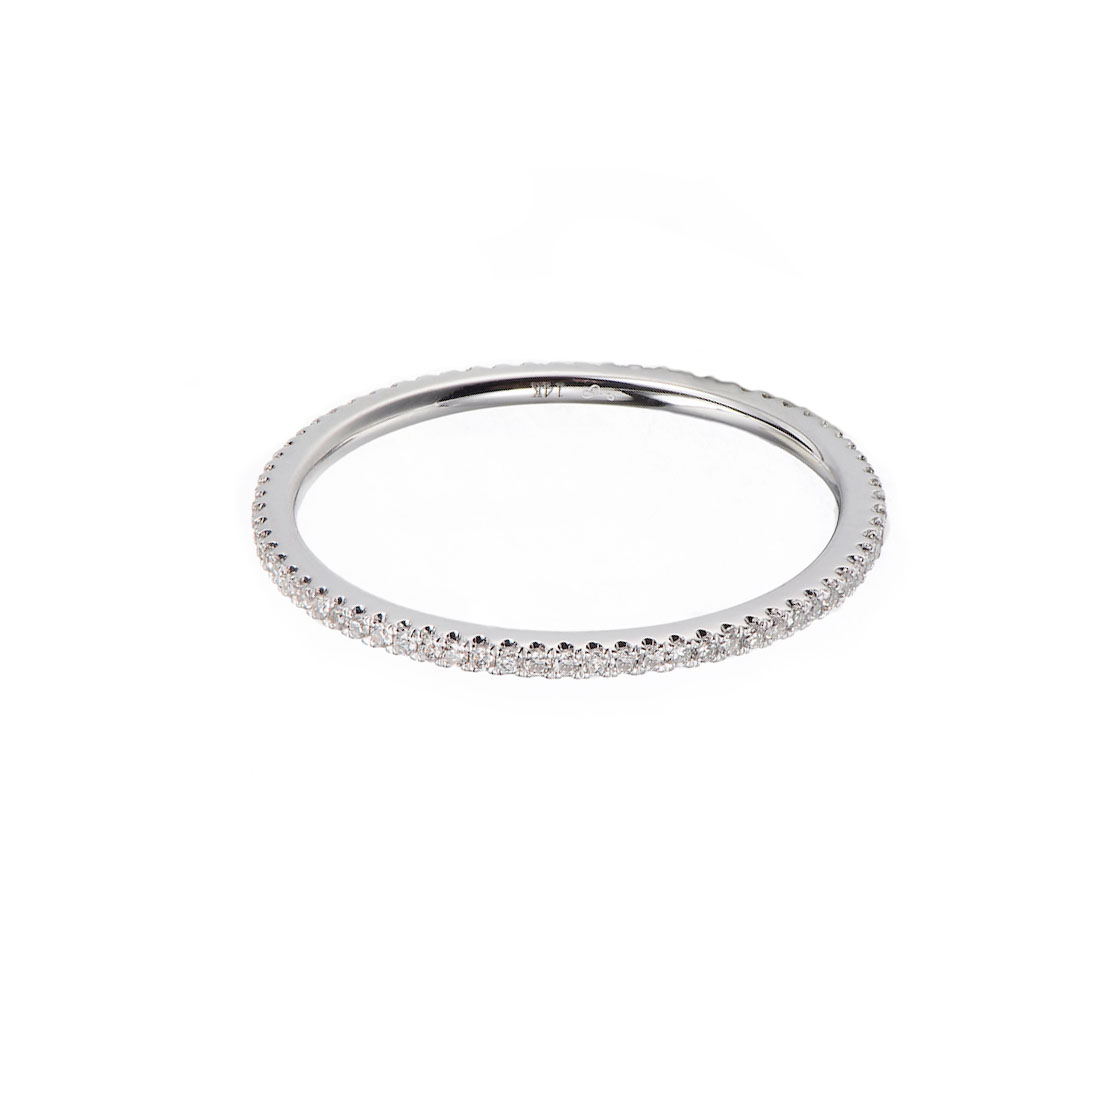 59-Slim-1mm-Micro-Pavé-Diamond-Eternity-Band-Ring-Guard-Spacer-14K-18K-YELLOW-WHITE-ROSE